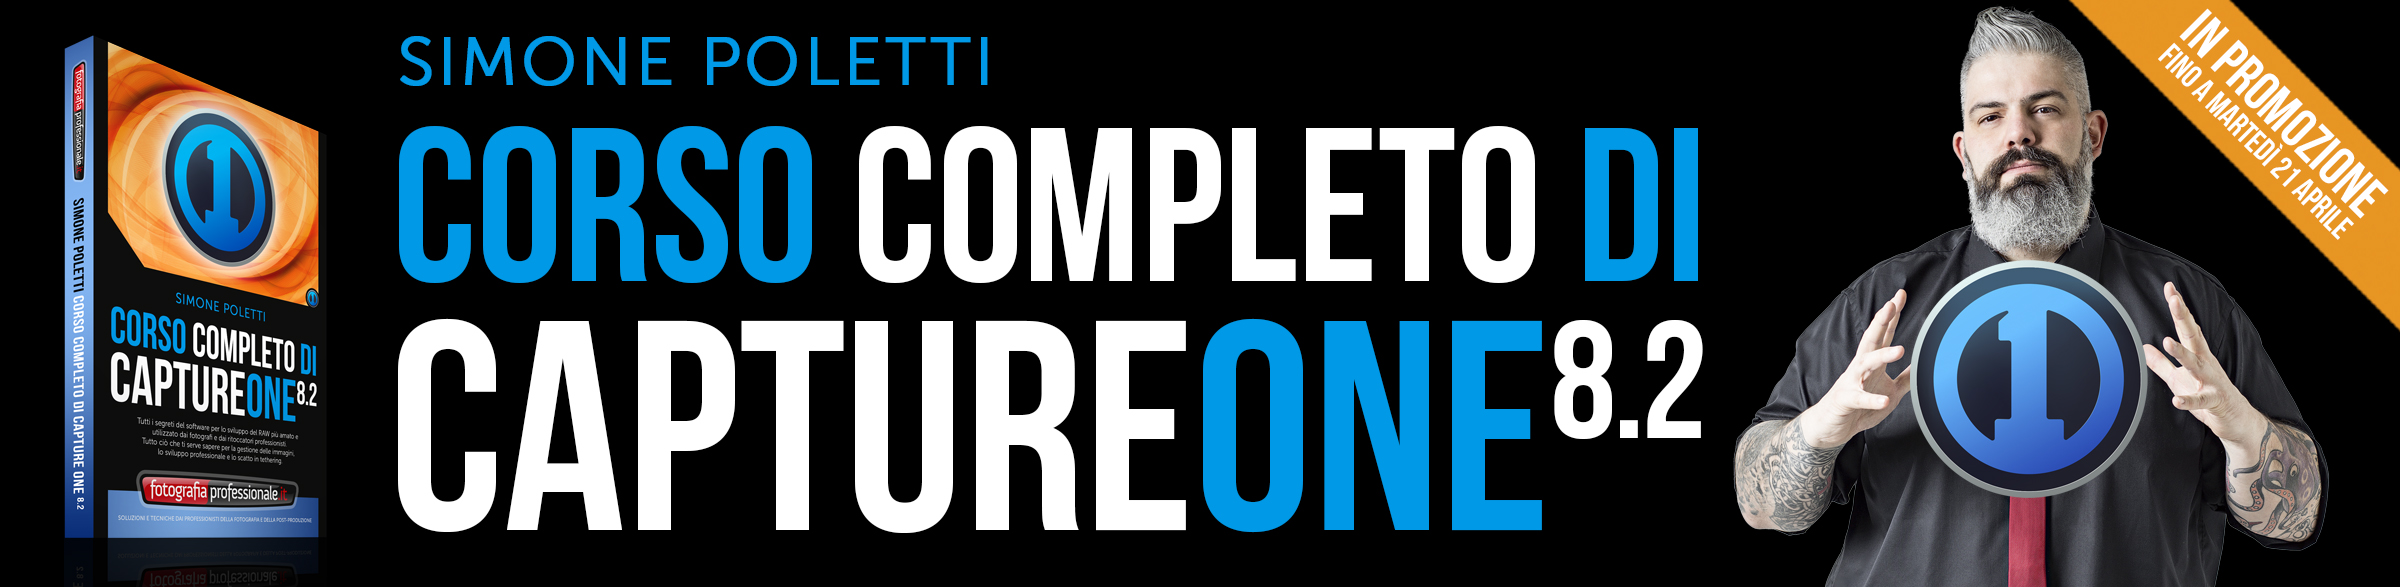 Corso Completo di Capture One 8.2